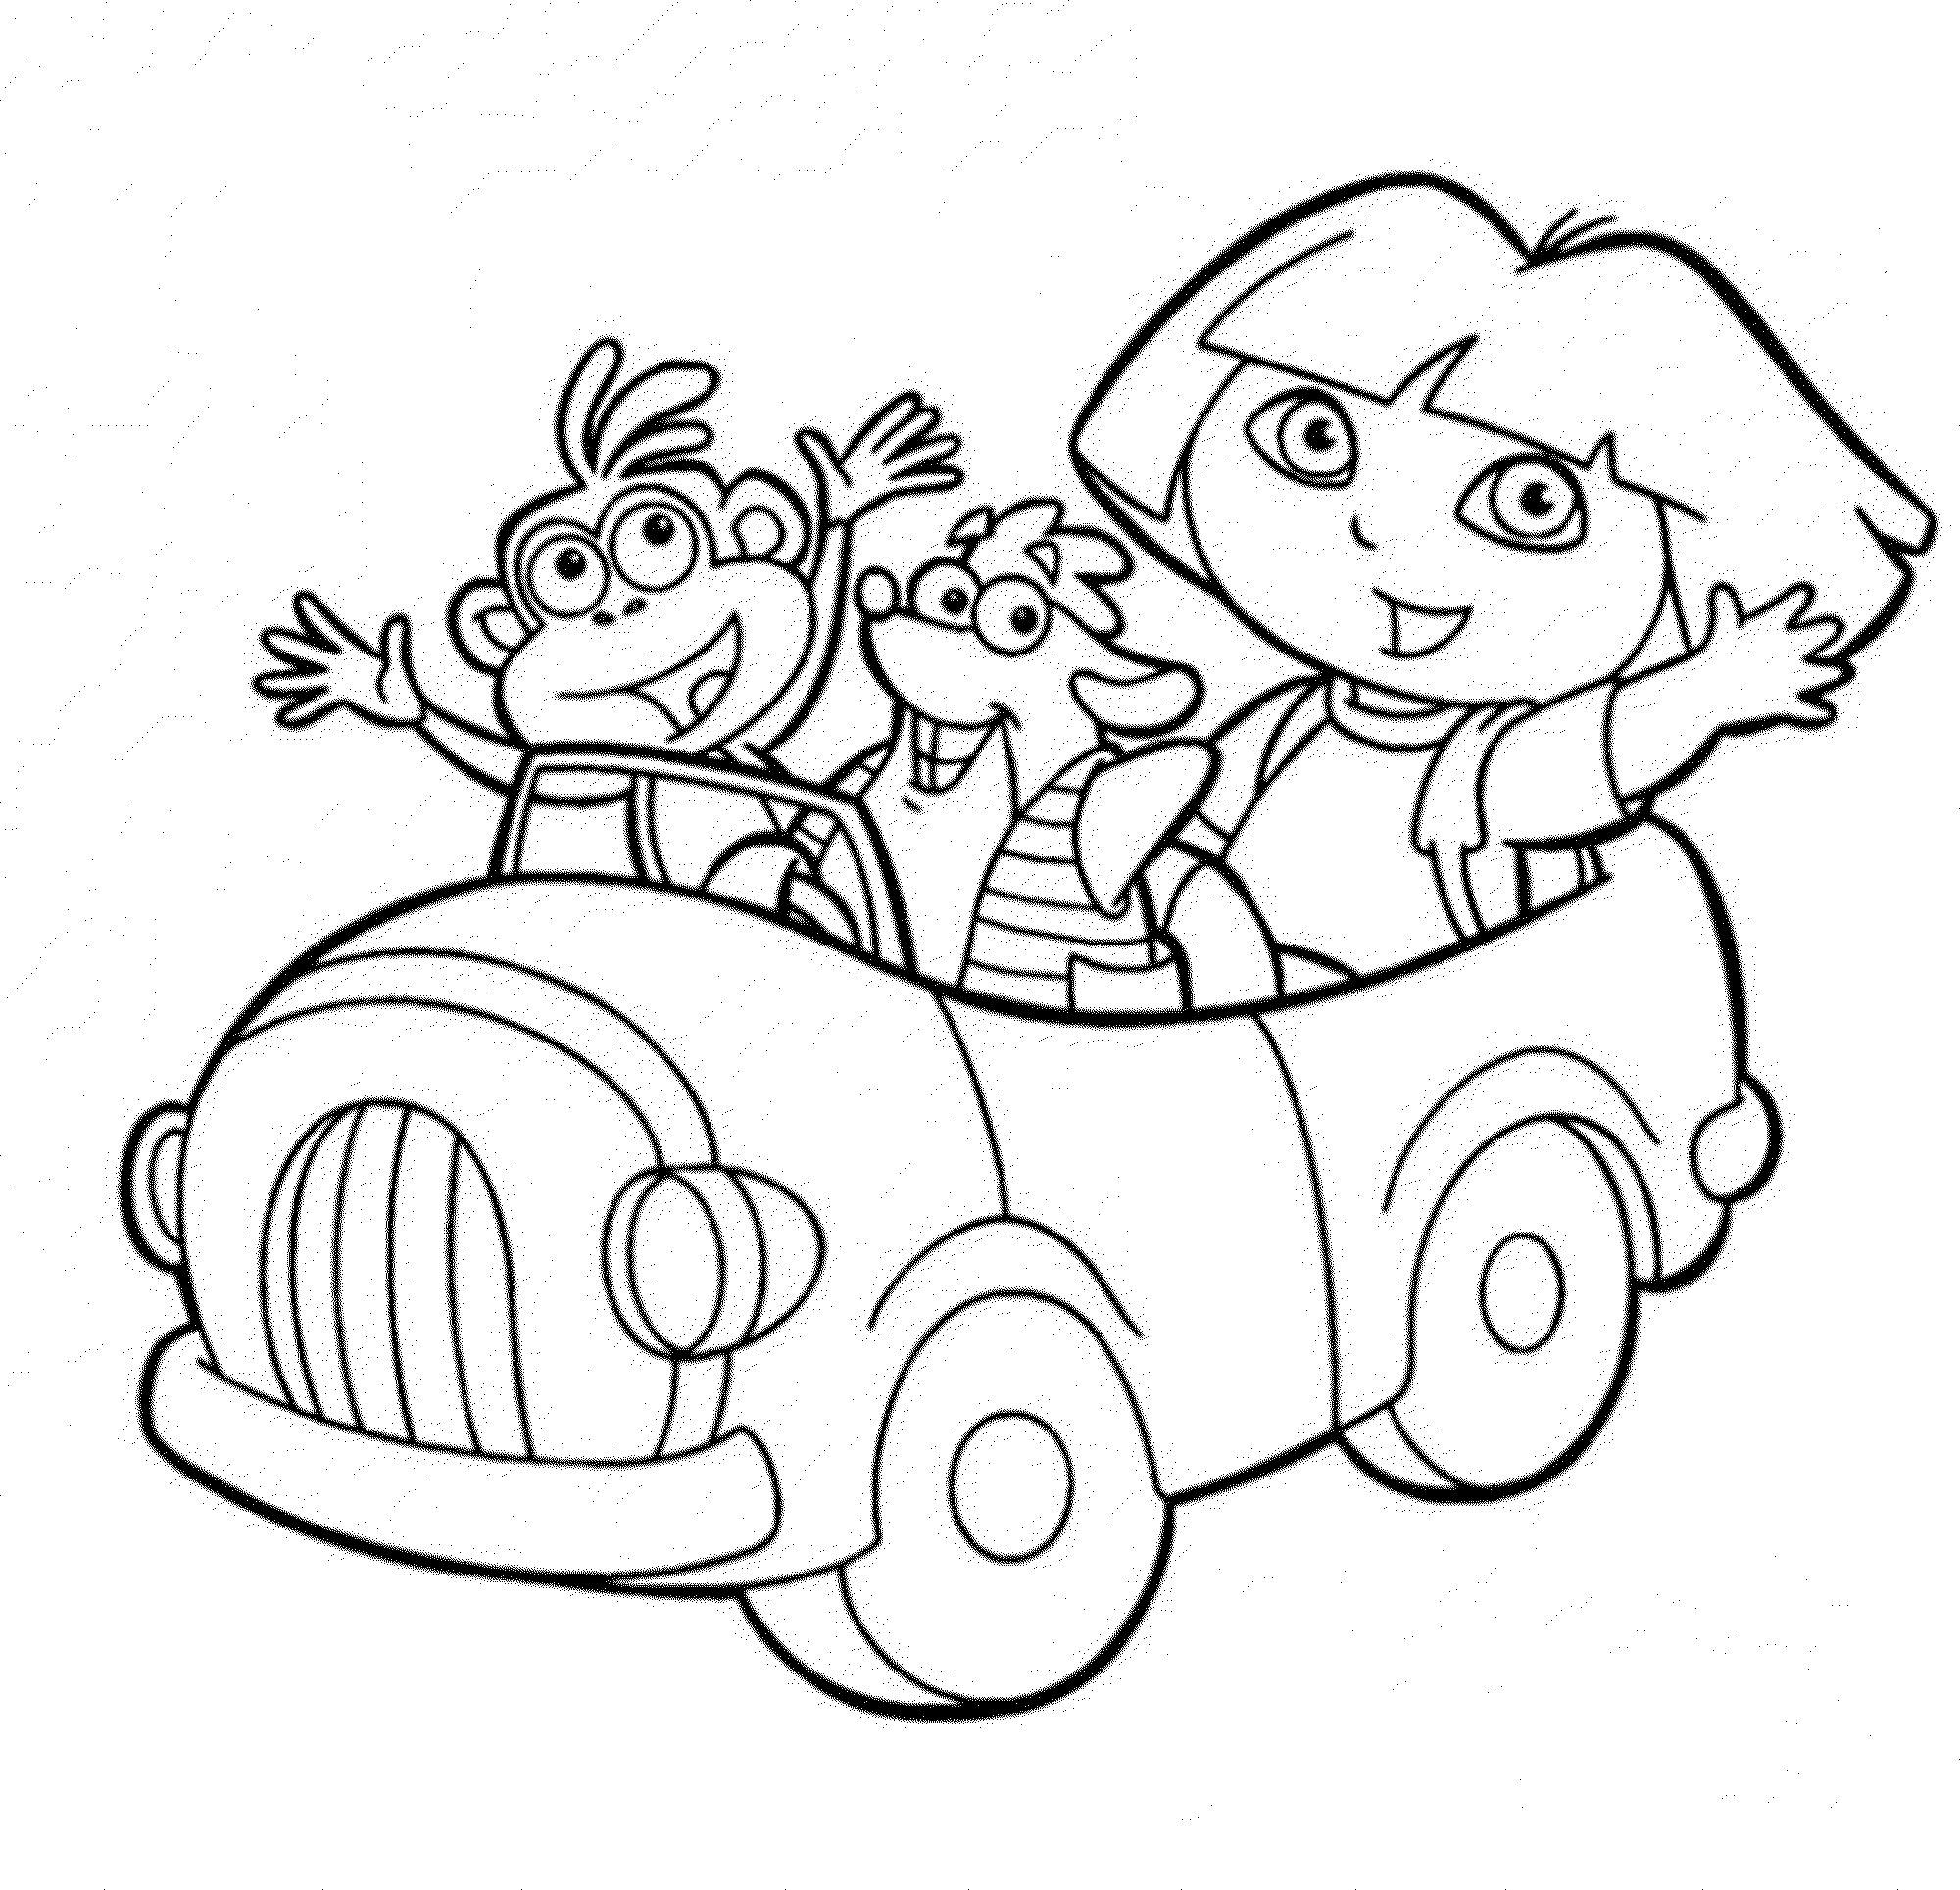 dora pictures to color and print dora the explorer coloring pages to pictures and color print dora